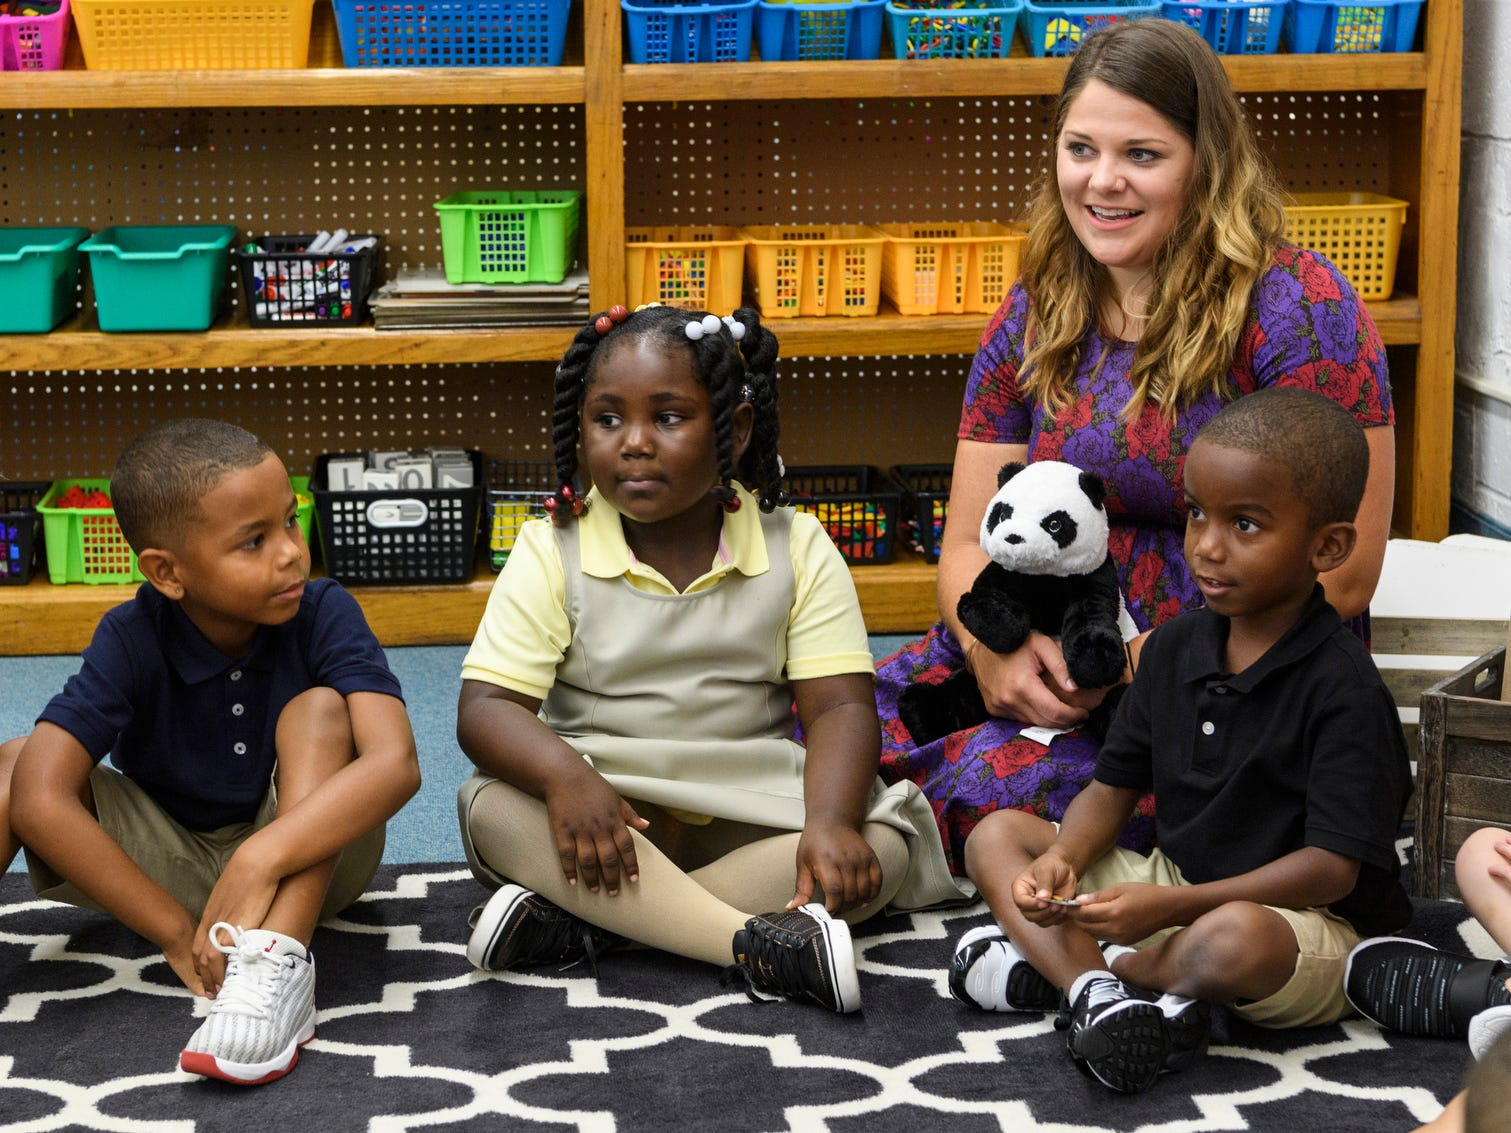 "Counselor Elizabeth Samelak, third from left, sits with kindergarten students in Brooke Havill's classroom on the first day of school at Dexter Elementary School in Evansville, Ind., Wednesday, Aug. 8, 2018. Samelak introduced a stuffed panda named Andy to the kindergarteners incase they needed extra comfort. ""It's his first day of school too and he is a little scared,"" she told them."